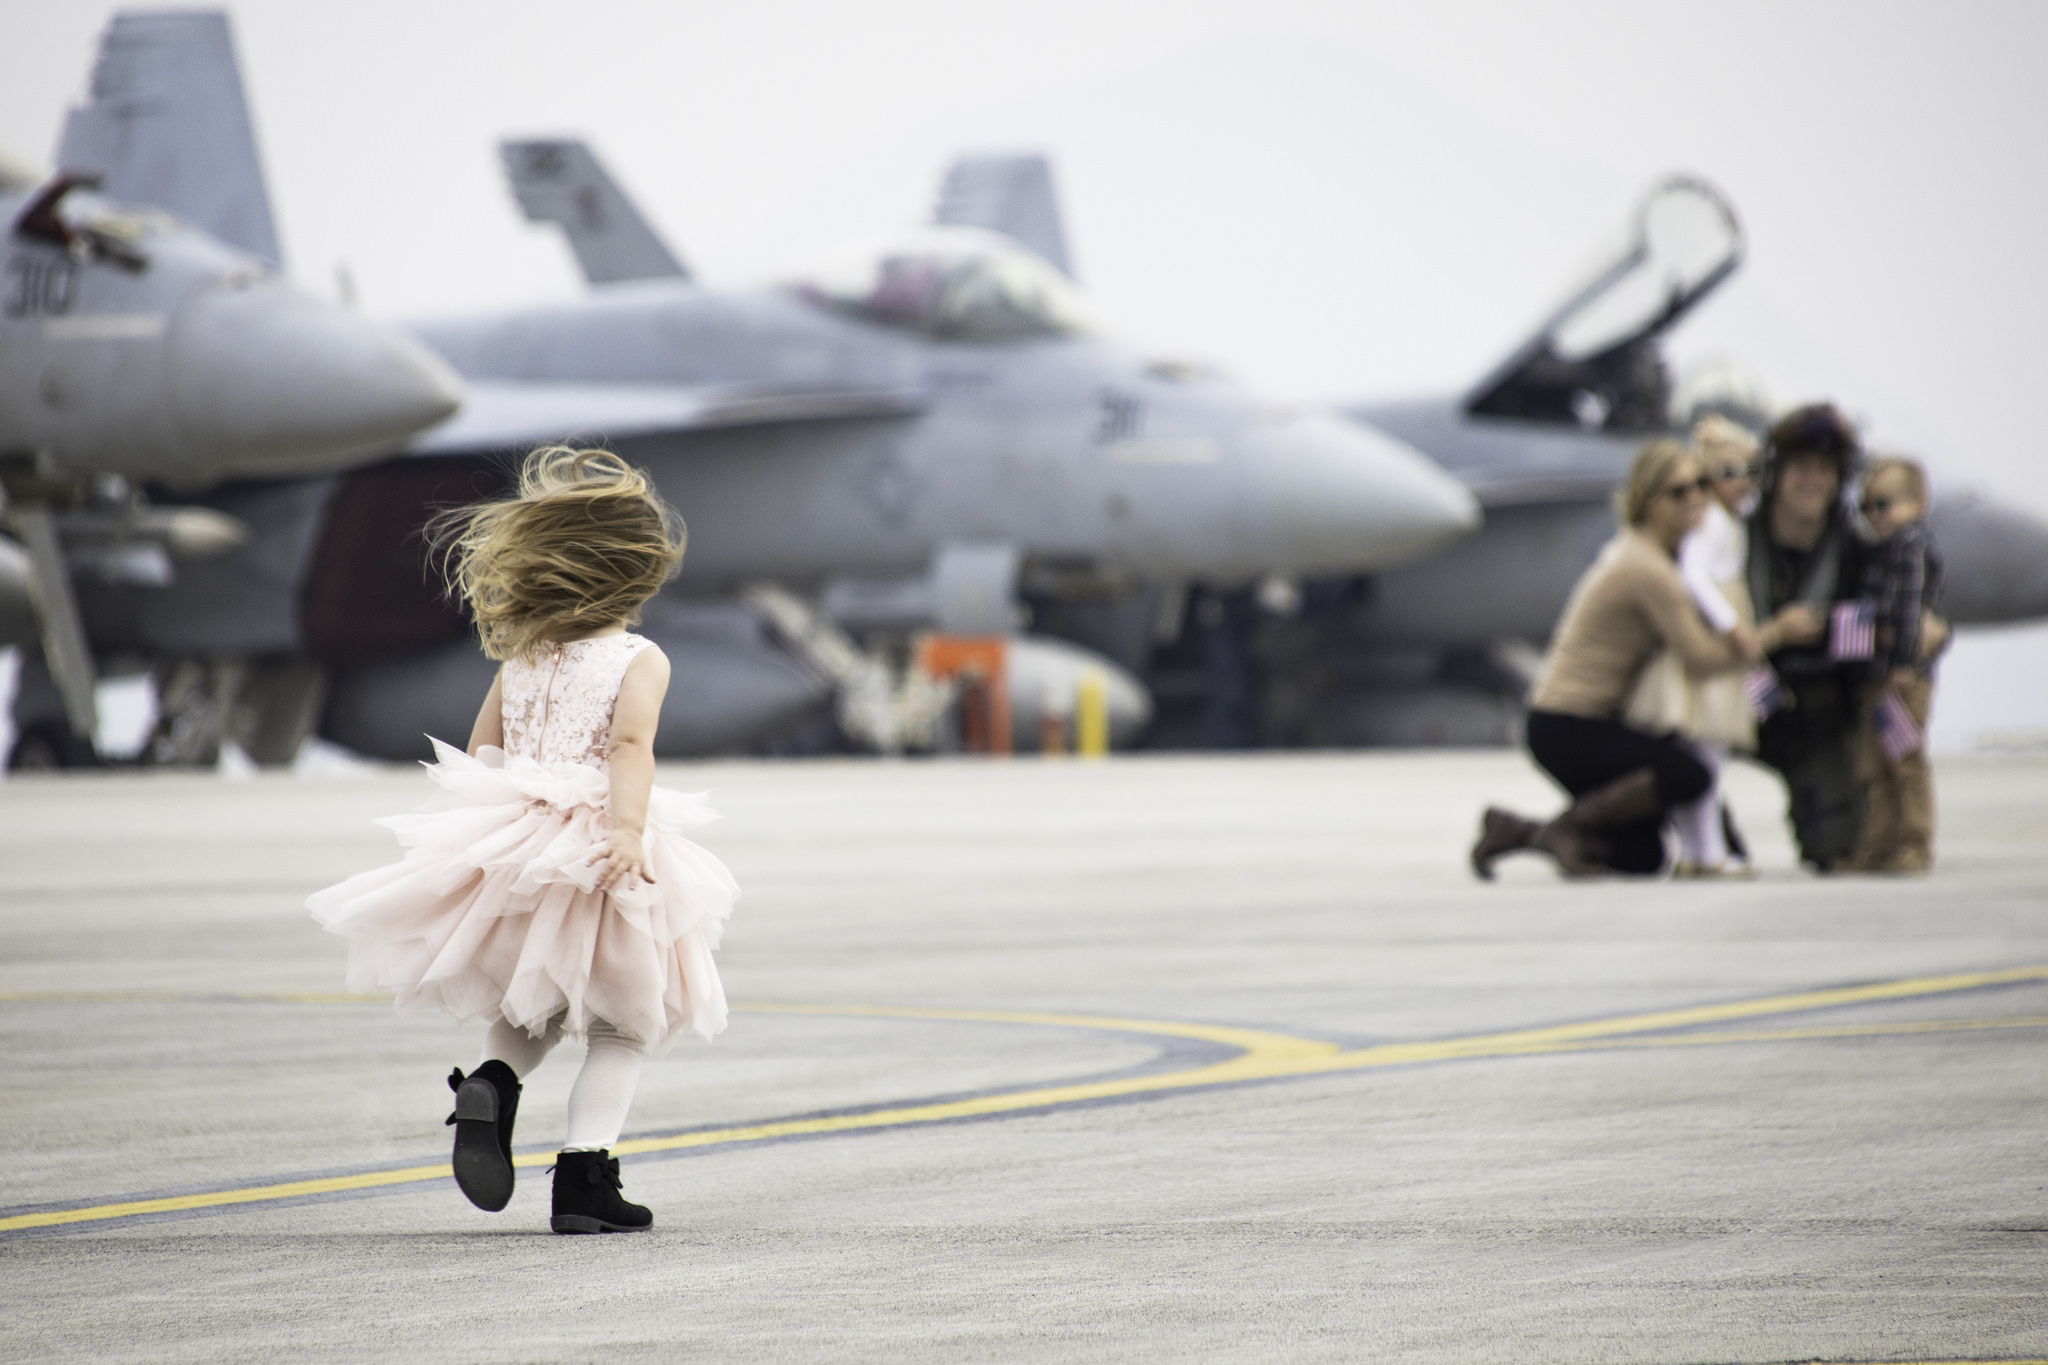 A young girl runs to greet her family after the arrival of Strike Fighter Squadron (VFA) 115, VFA-195 and Electronic Attack Squadron (VAQ) 141 at Marine Corps Air Station (MCAS) Iwakuni, Japan. VFA-115, VFA-195 and VAQ 141 arrived at MCAS Iwakuni as part Carrier Air Wing (CVW) 5's relocation from Naval Air Facility (NAF) Atsugi, Japan. (Cpl. Joseph Abrego/Marine Corps)